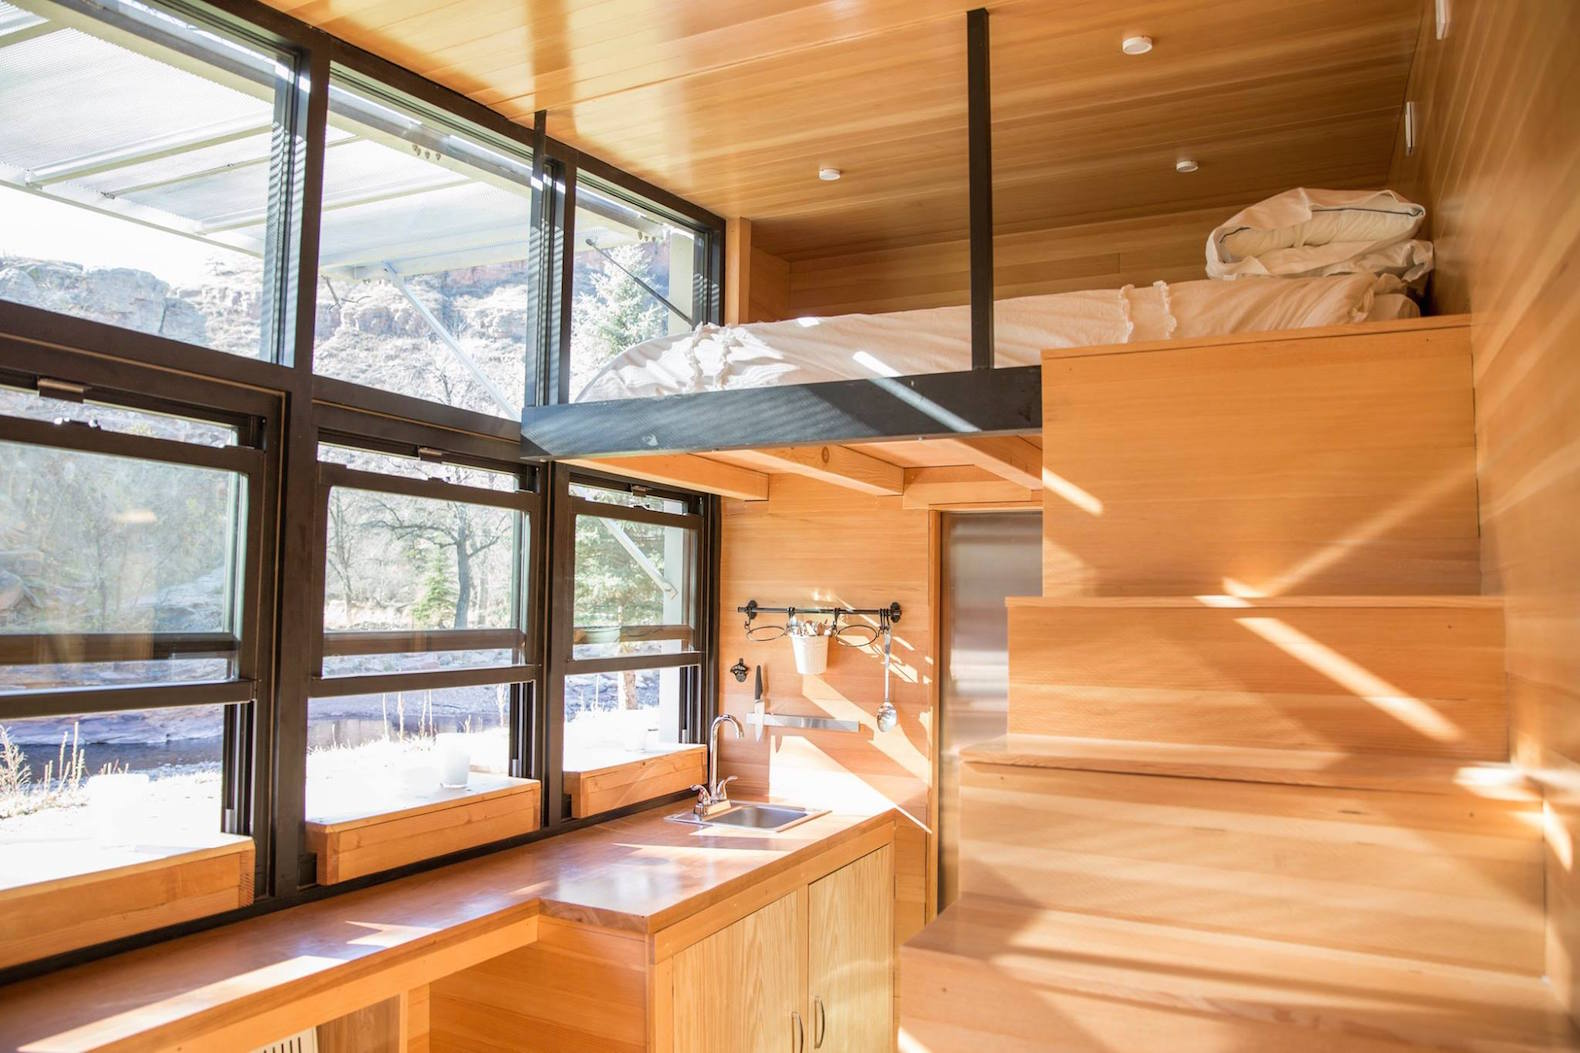 Modern Mobile Home Designs Id on eco-friendly modern home designs, modern mobile prefab, modern motorcycle designs, modern trailer homes rvs, modern industrial designs, home interior bathroom designs, modern shipping container home designs, modern vacation home designs, modern farm designs, modern boat designs, modern truck designs, modern lakefront home designs, modern colonial house designs, modern mobile offices, modern double wide mobile homes, modern trailer designs, modern business designs, contemporary modular home designs, modern fourplex designs, modern concrete prefab home,